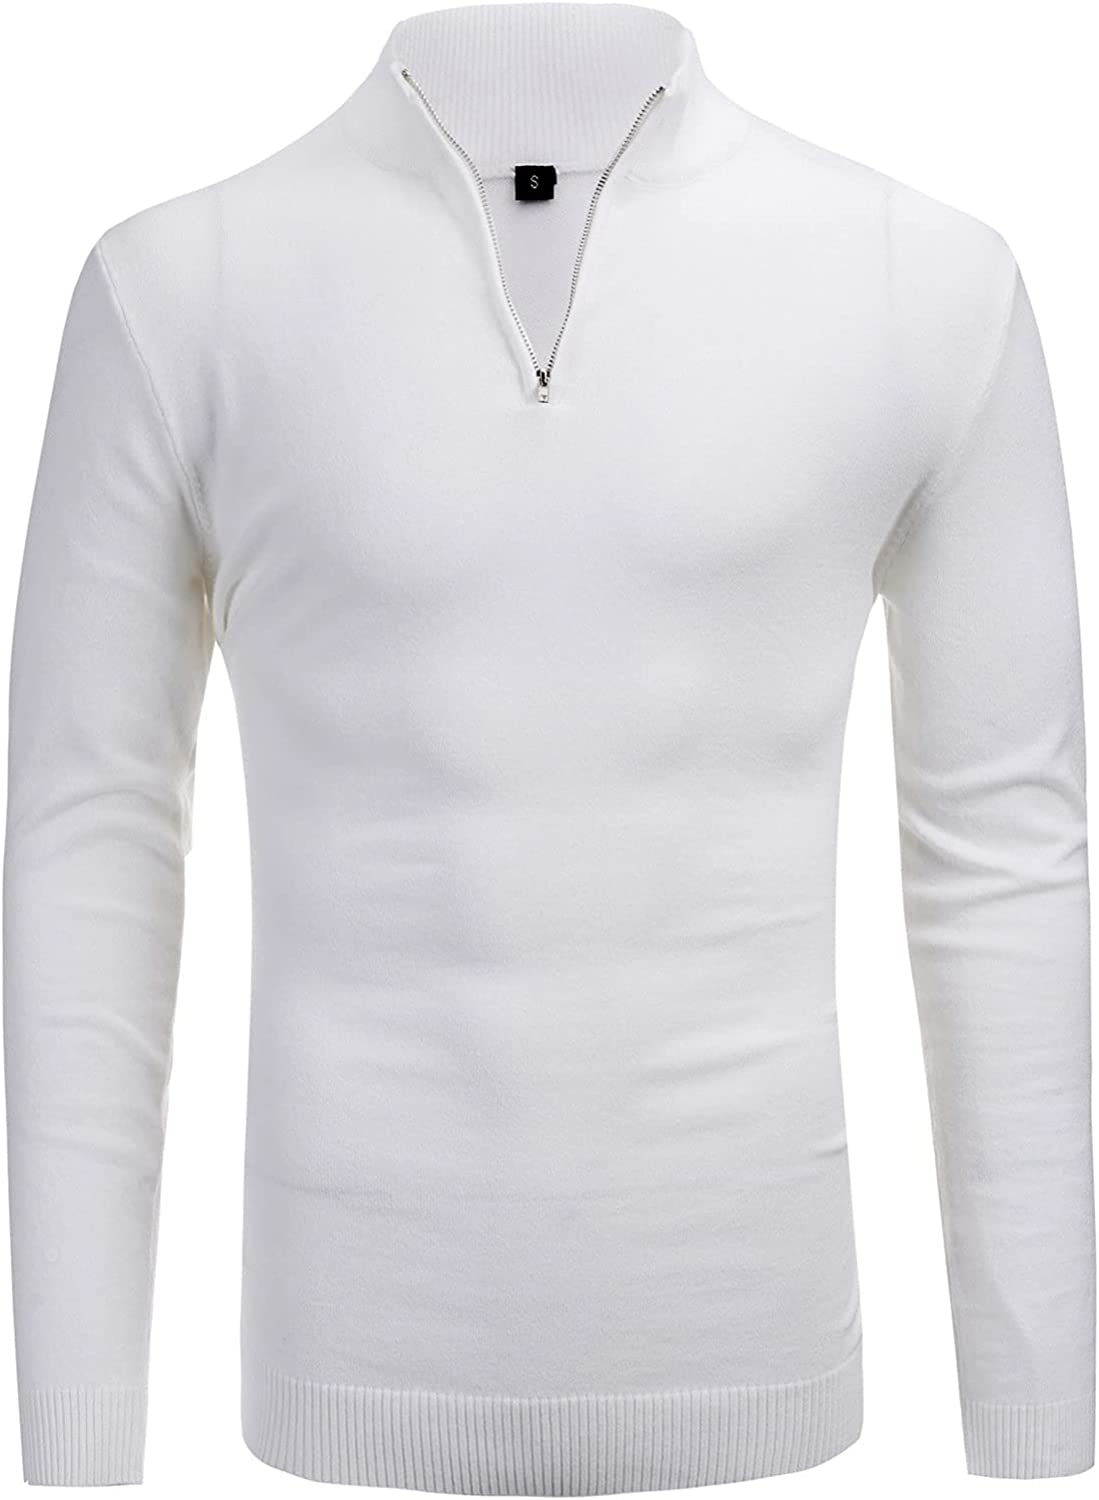 Chokovy Quarter Zipper Plain Sweater Casual Style Sweaters for Men Ribbed Pullover Autumn Winter Essentials